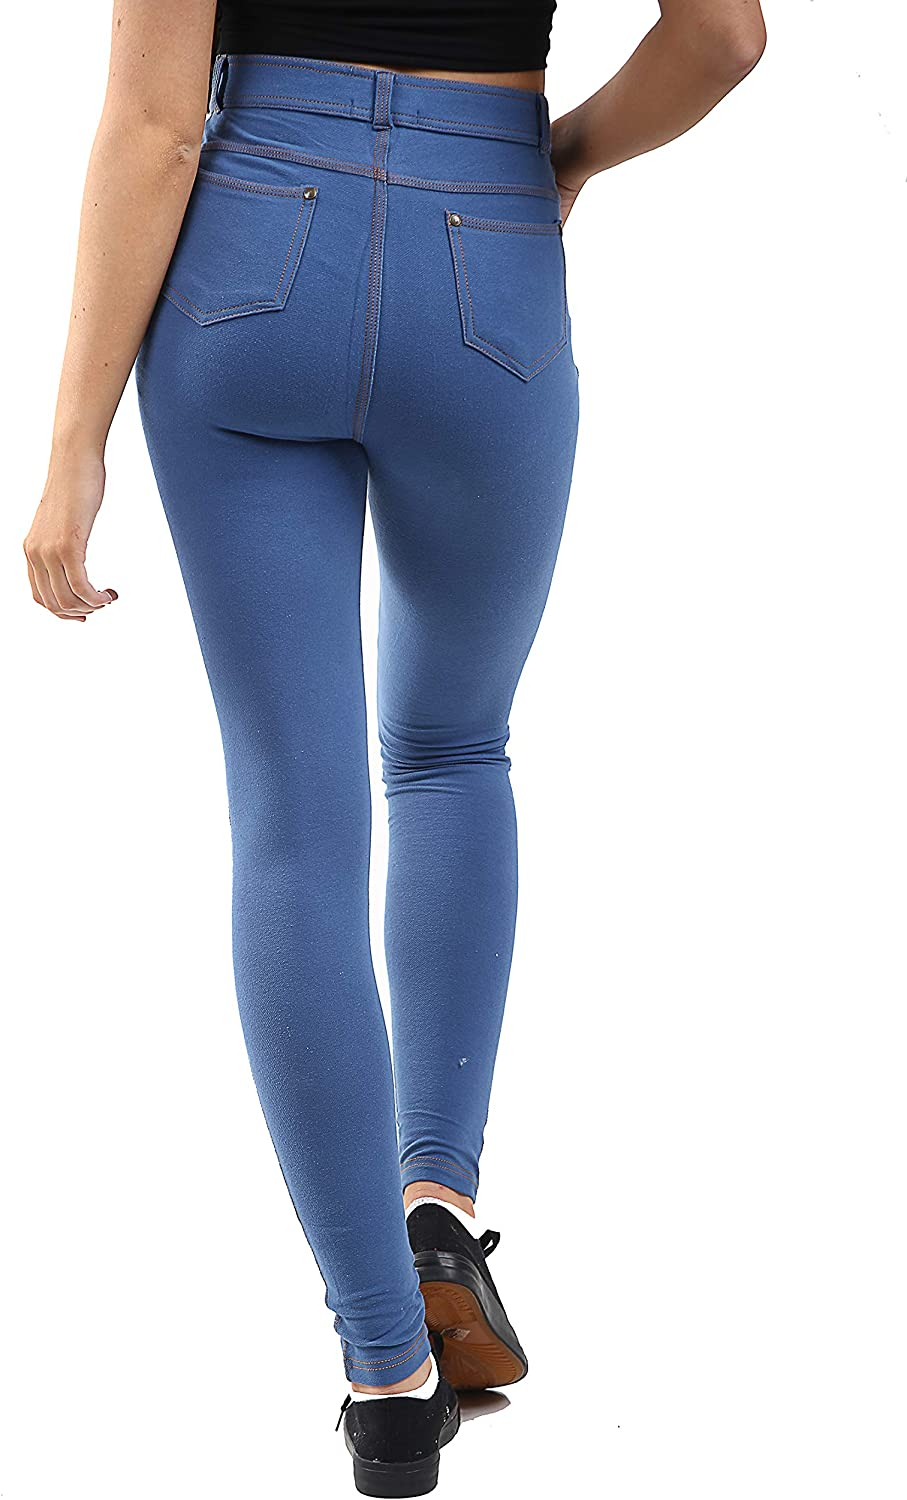 GW CLASSYOUTFIT Womens Ladies Stretchy Denim Look Skinny Jeggings Leggings Trouser Pants